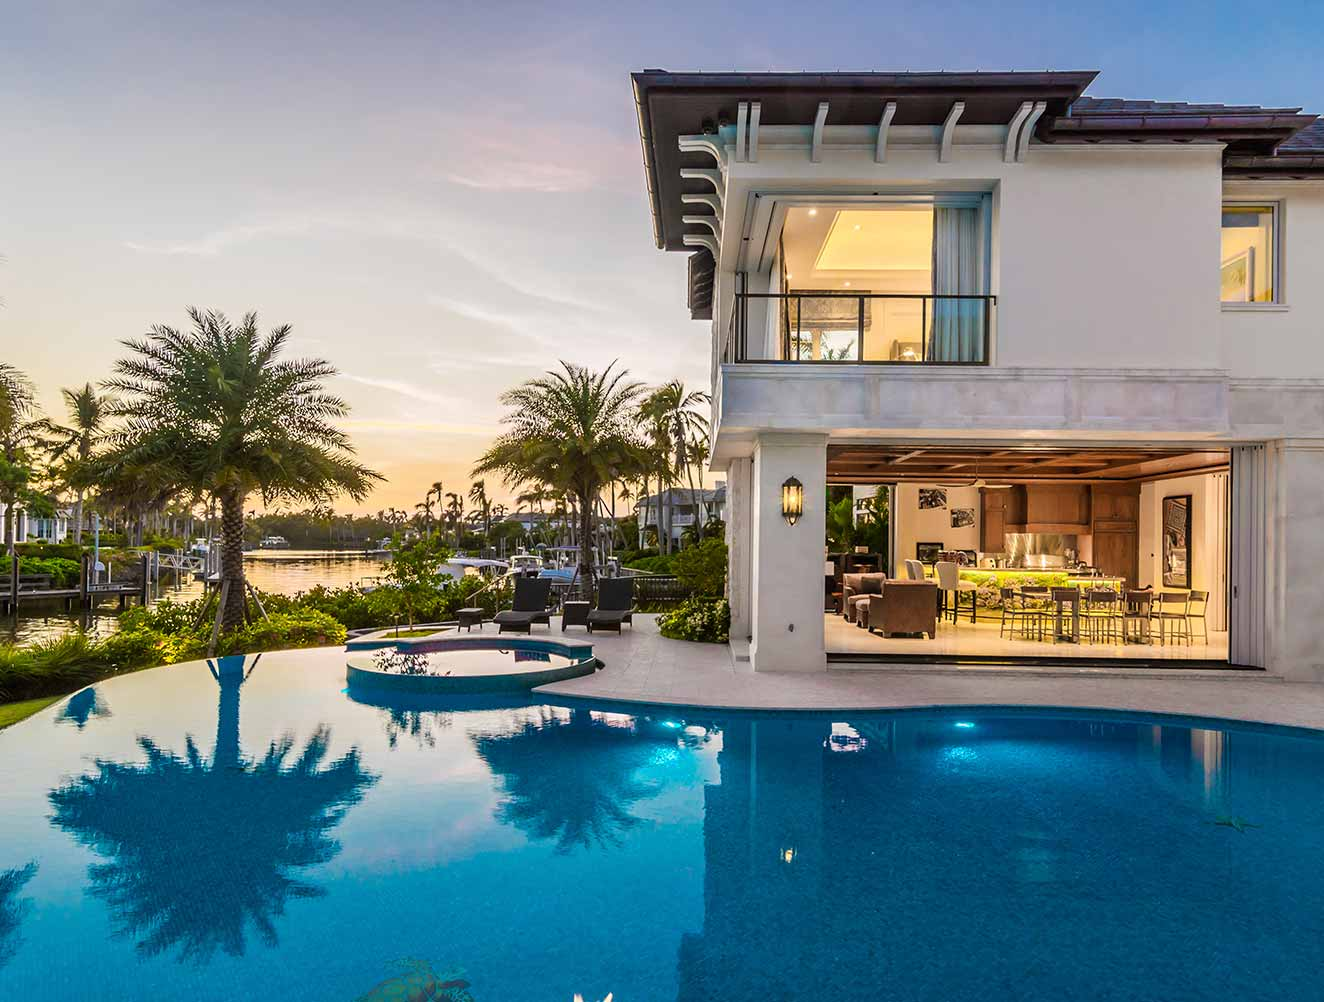 Outdoor Entertaining & Pool at Nelson's Walk Residence in Naples Florida, single family home designed by Kukk Architecture & Design Naples Architecture Firm